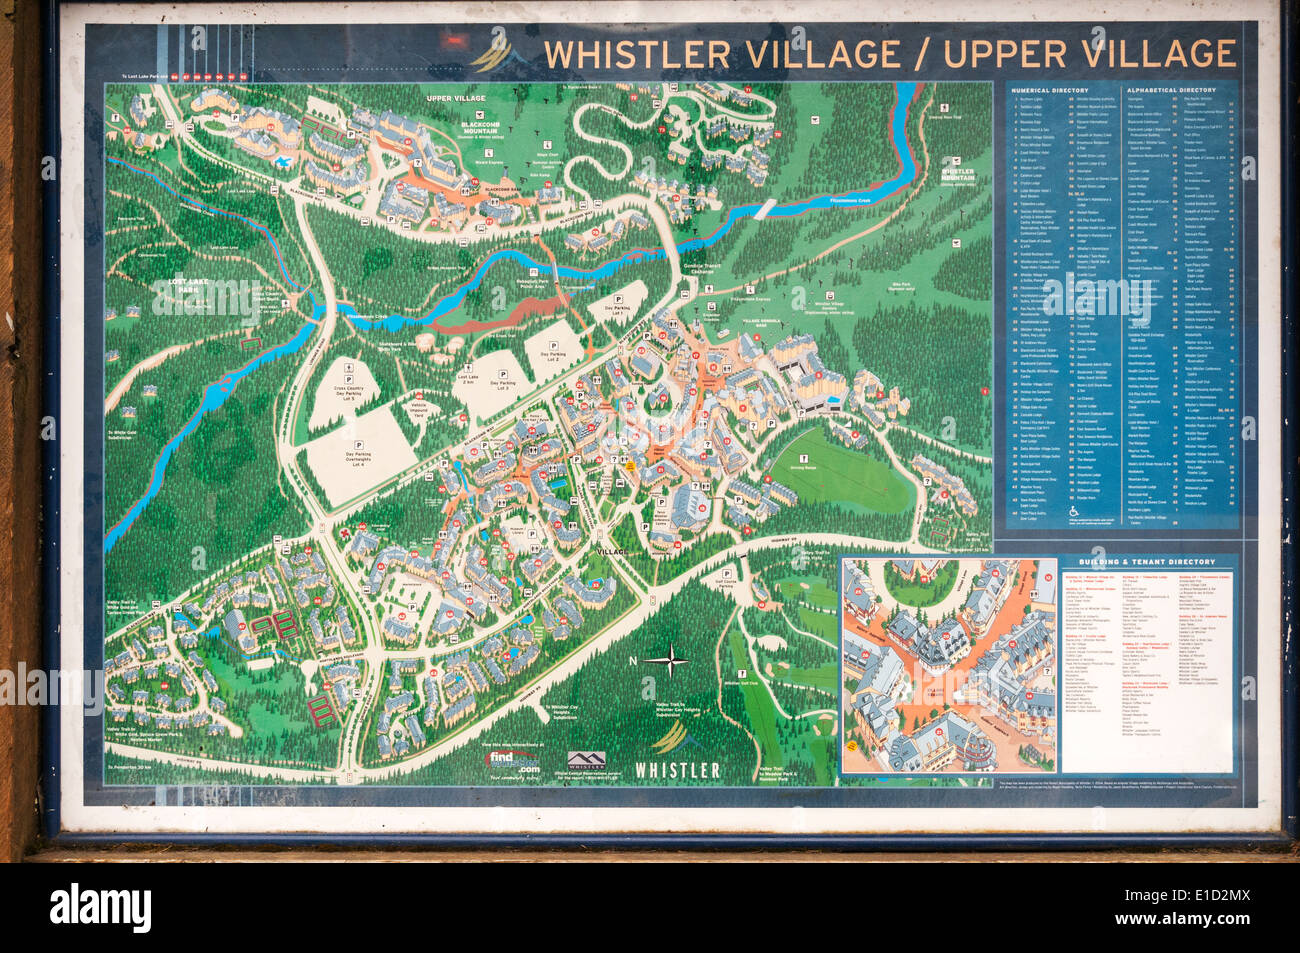 Elk203 1095 canada british columbia whistler town map stock photo elk203 1095 canada british columbia whistler town map gumiabroncs Gallery